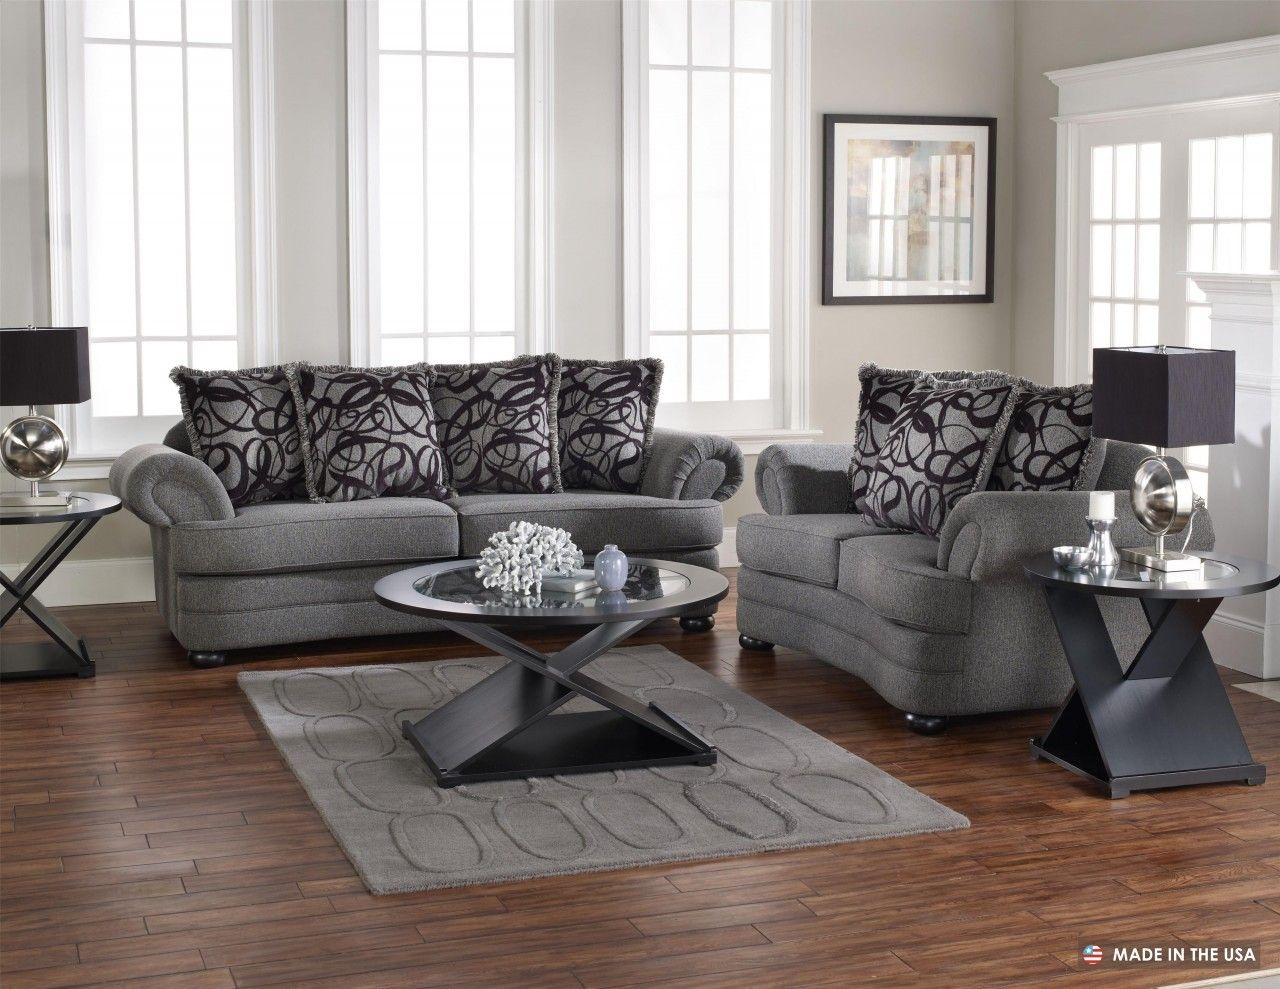 Wonderful Living Room Design With Grey Sofa Set And Grey Cushion ...